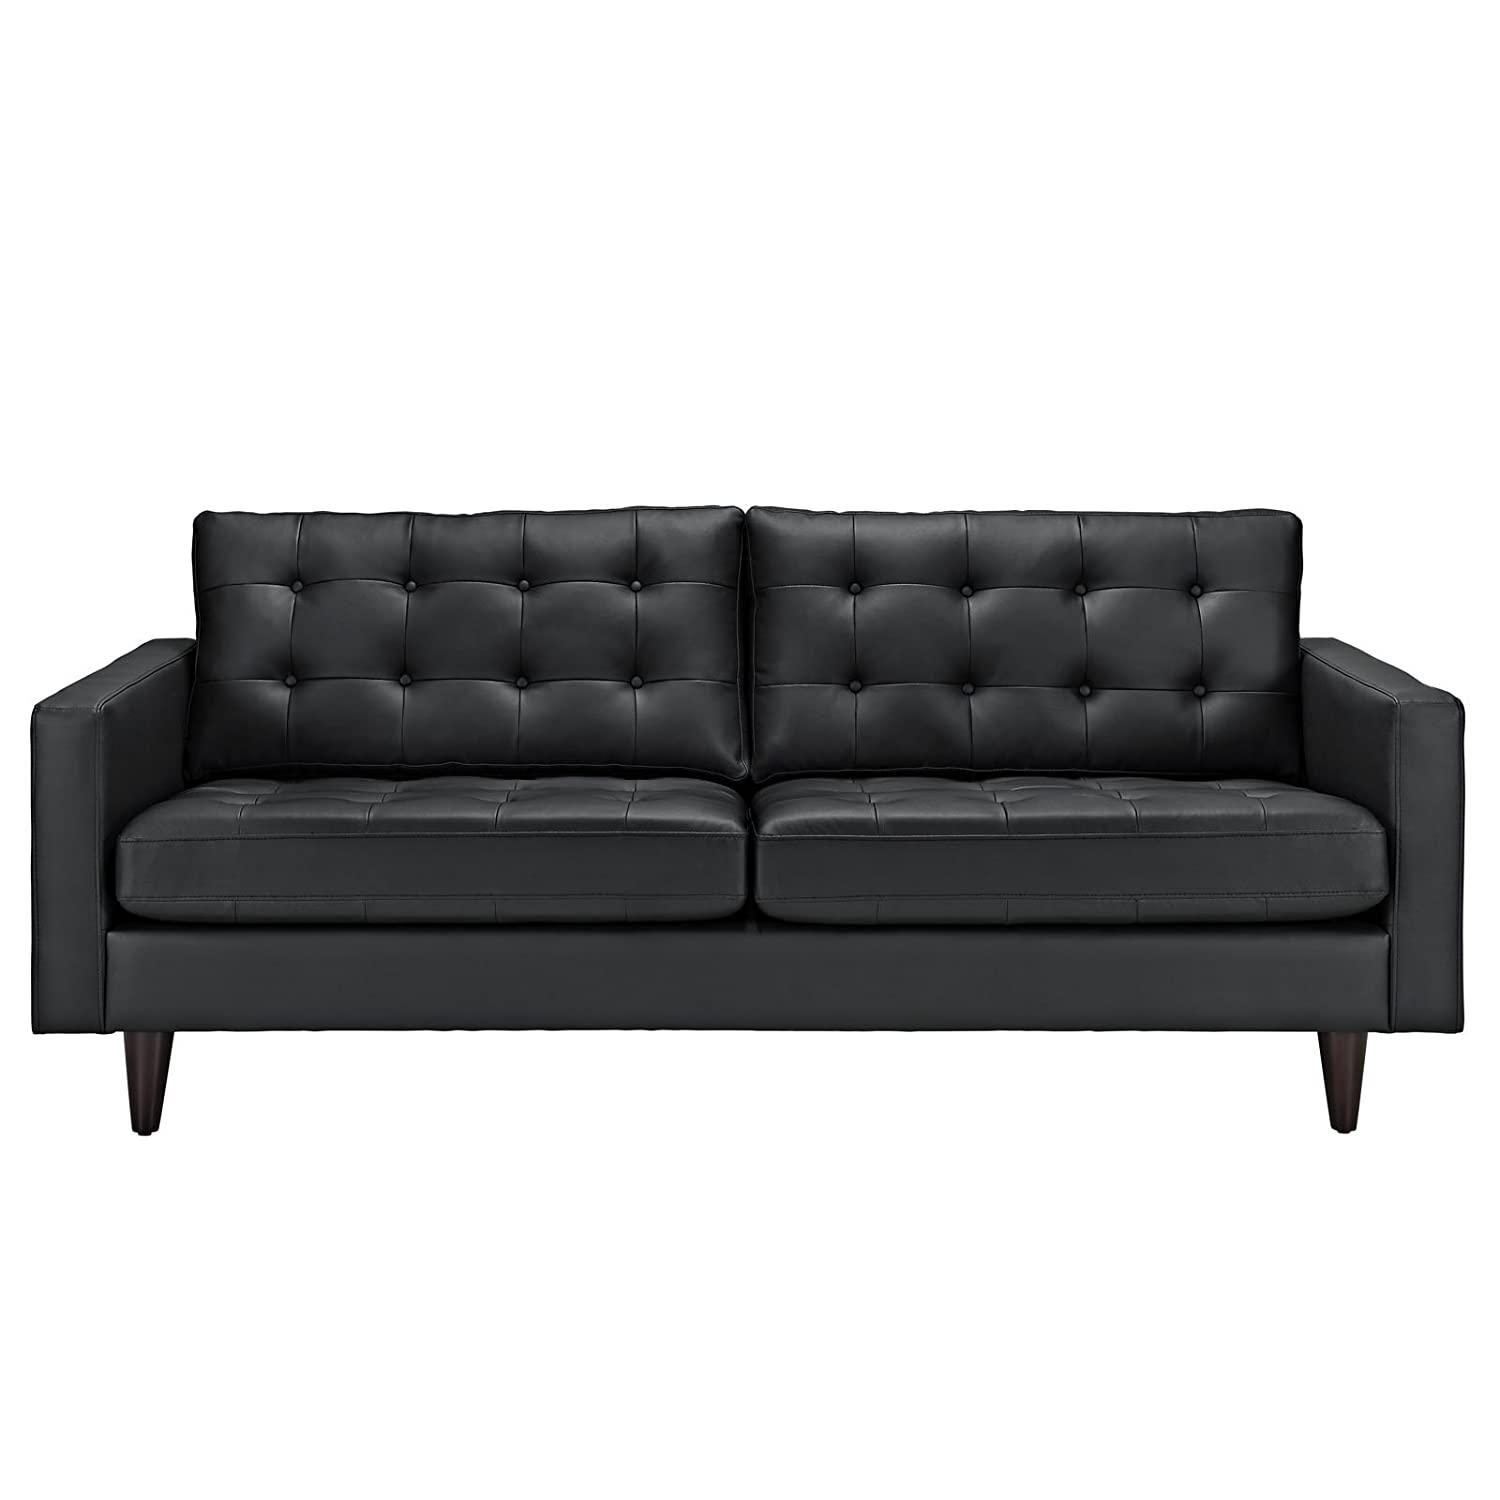 amazoncom modway empress midcentury modern upholstered leather sofa inblack kitchen  dining. amazoncom modway empress midcentury modern upholstered leather